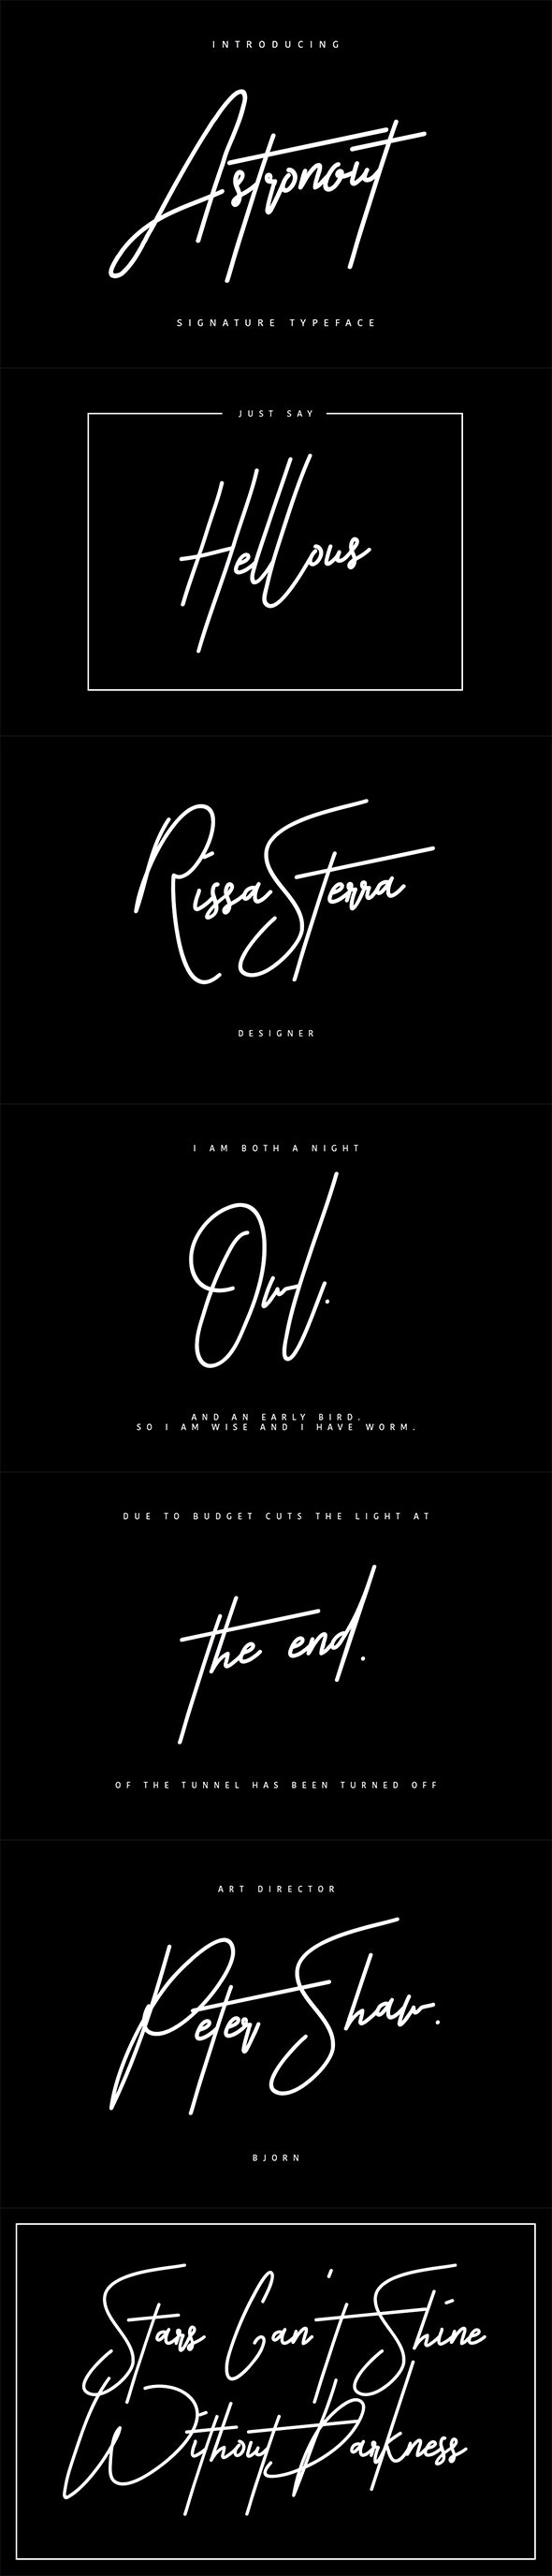 Astronout Signature Typeface Swash Update - Calligraphy Script